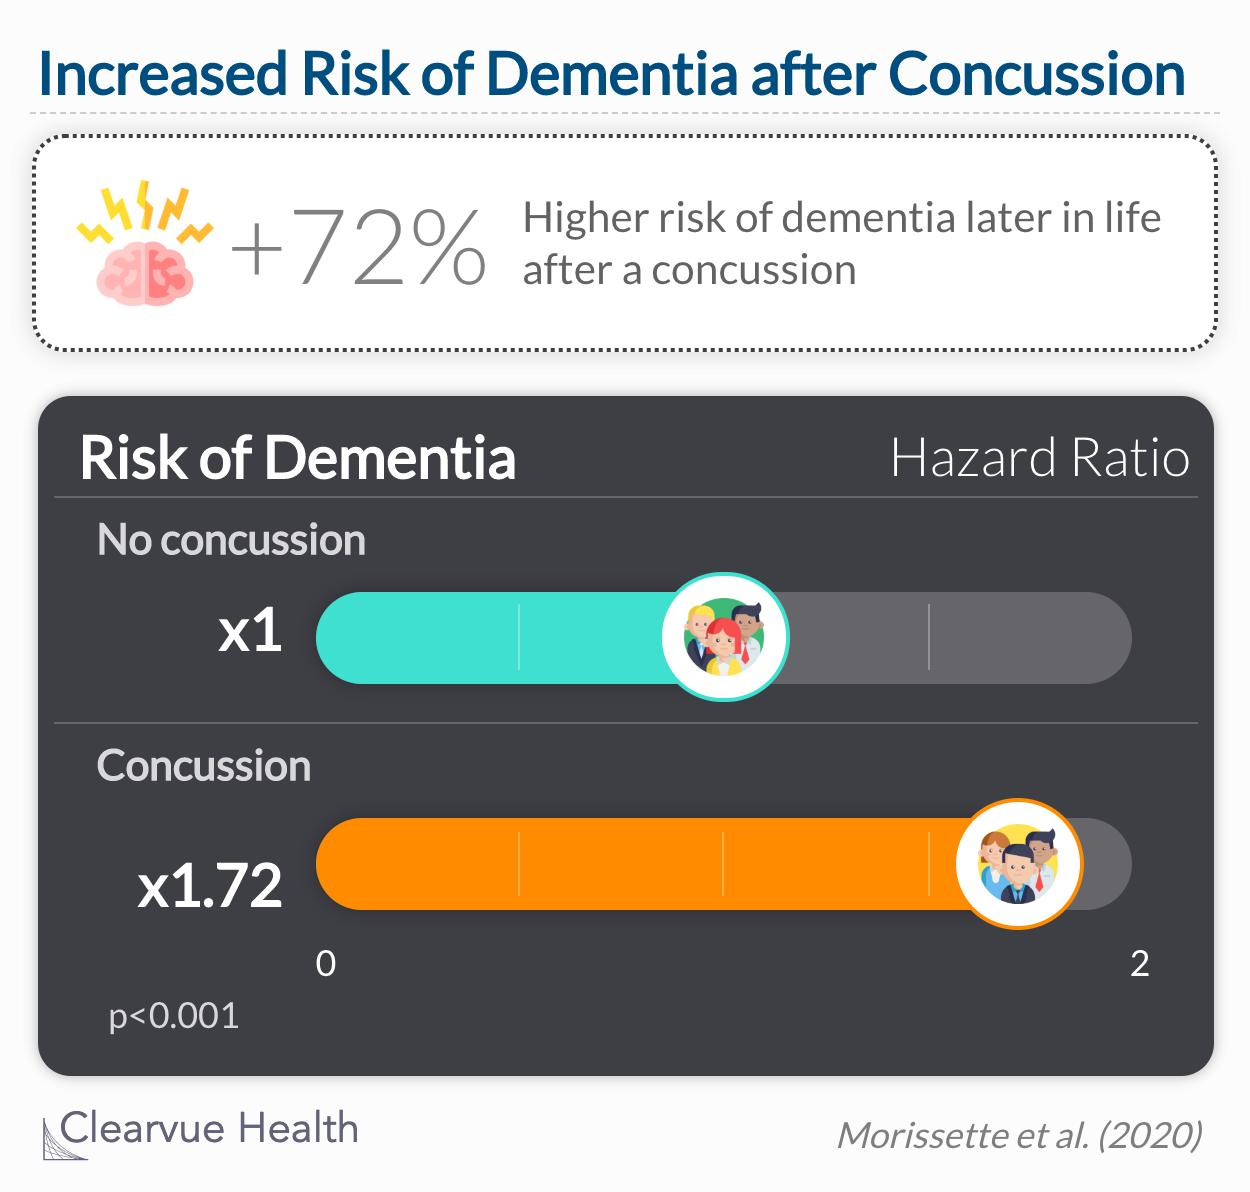 People who had concussions had a 72% higher chance of dementia diagnosis than comparable people who did not have concussions.